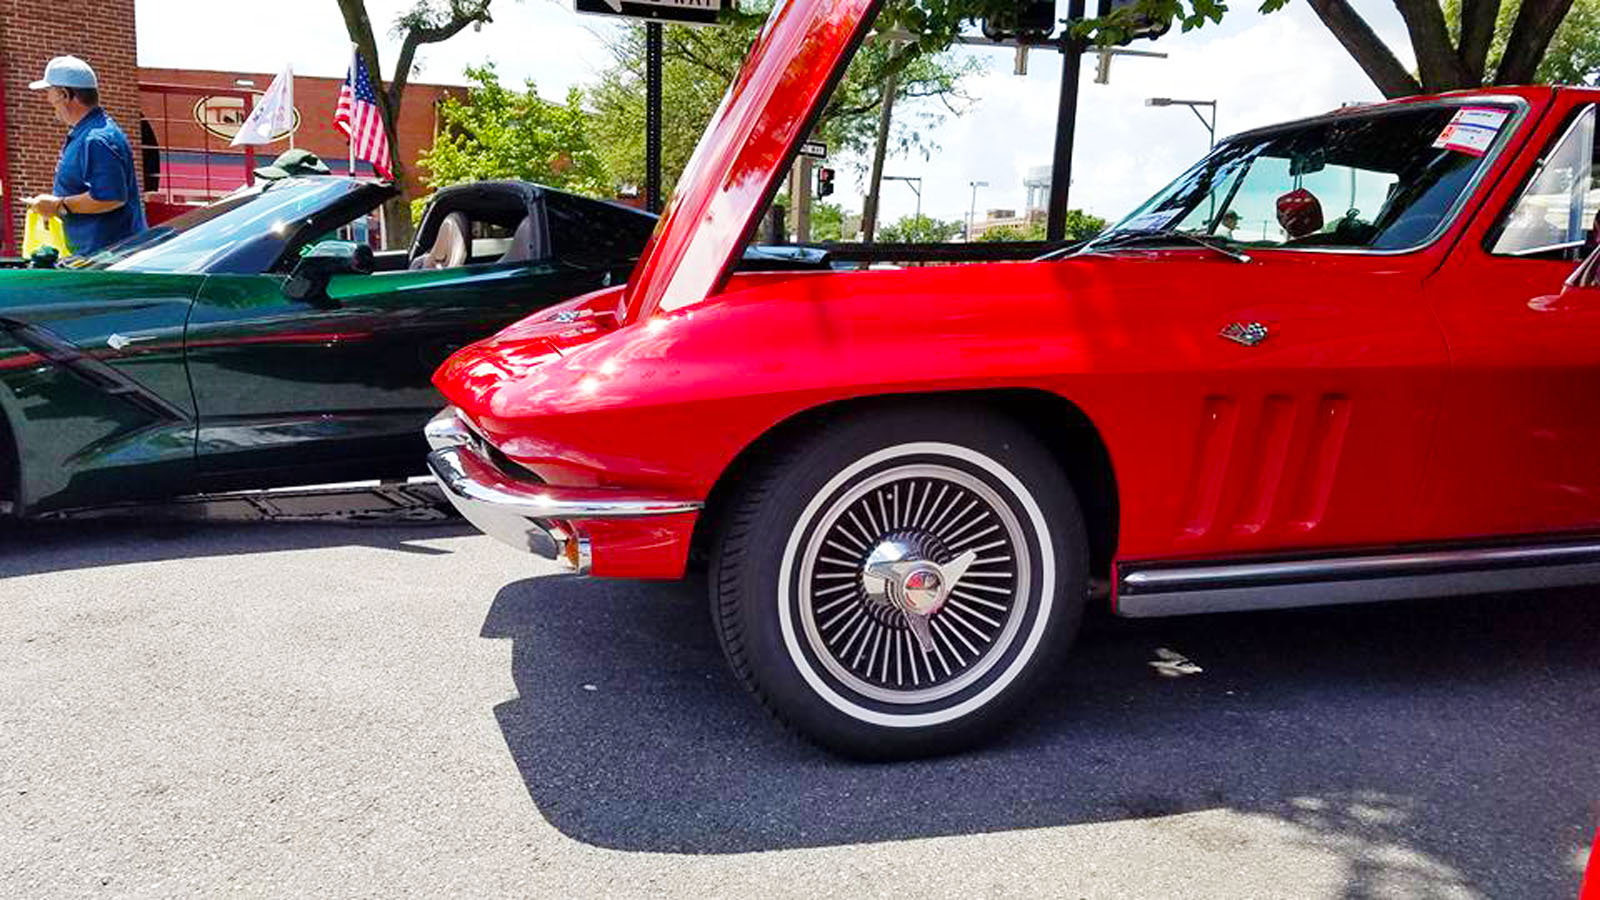 C2 corvette people's choice